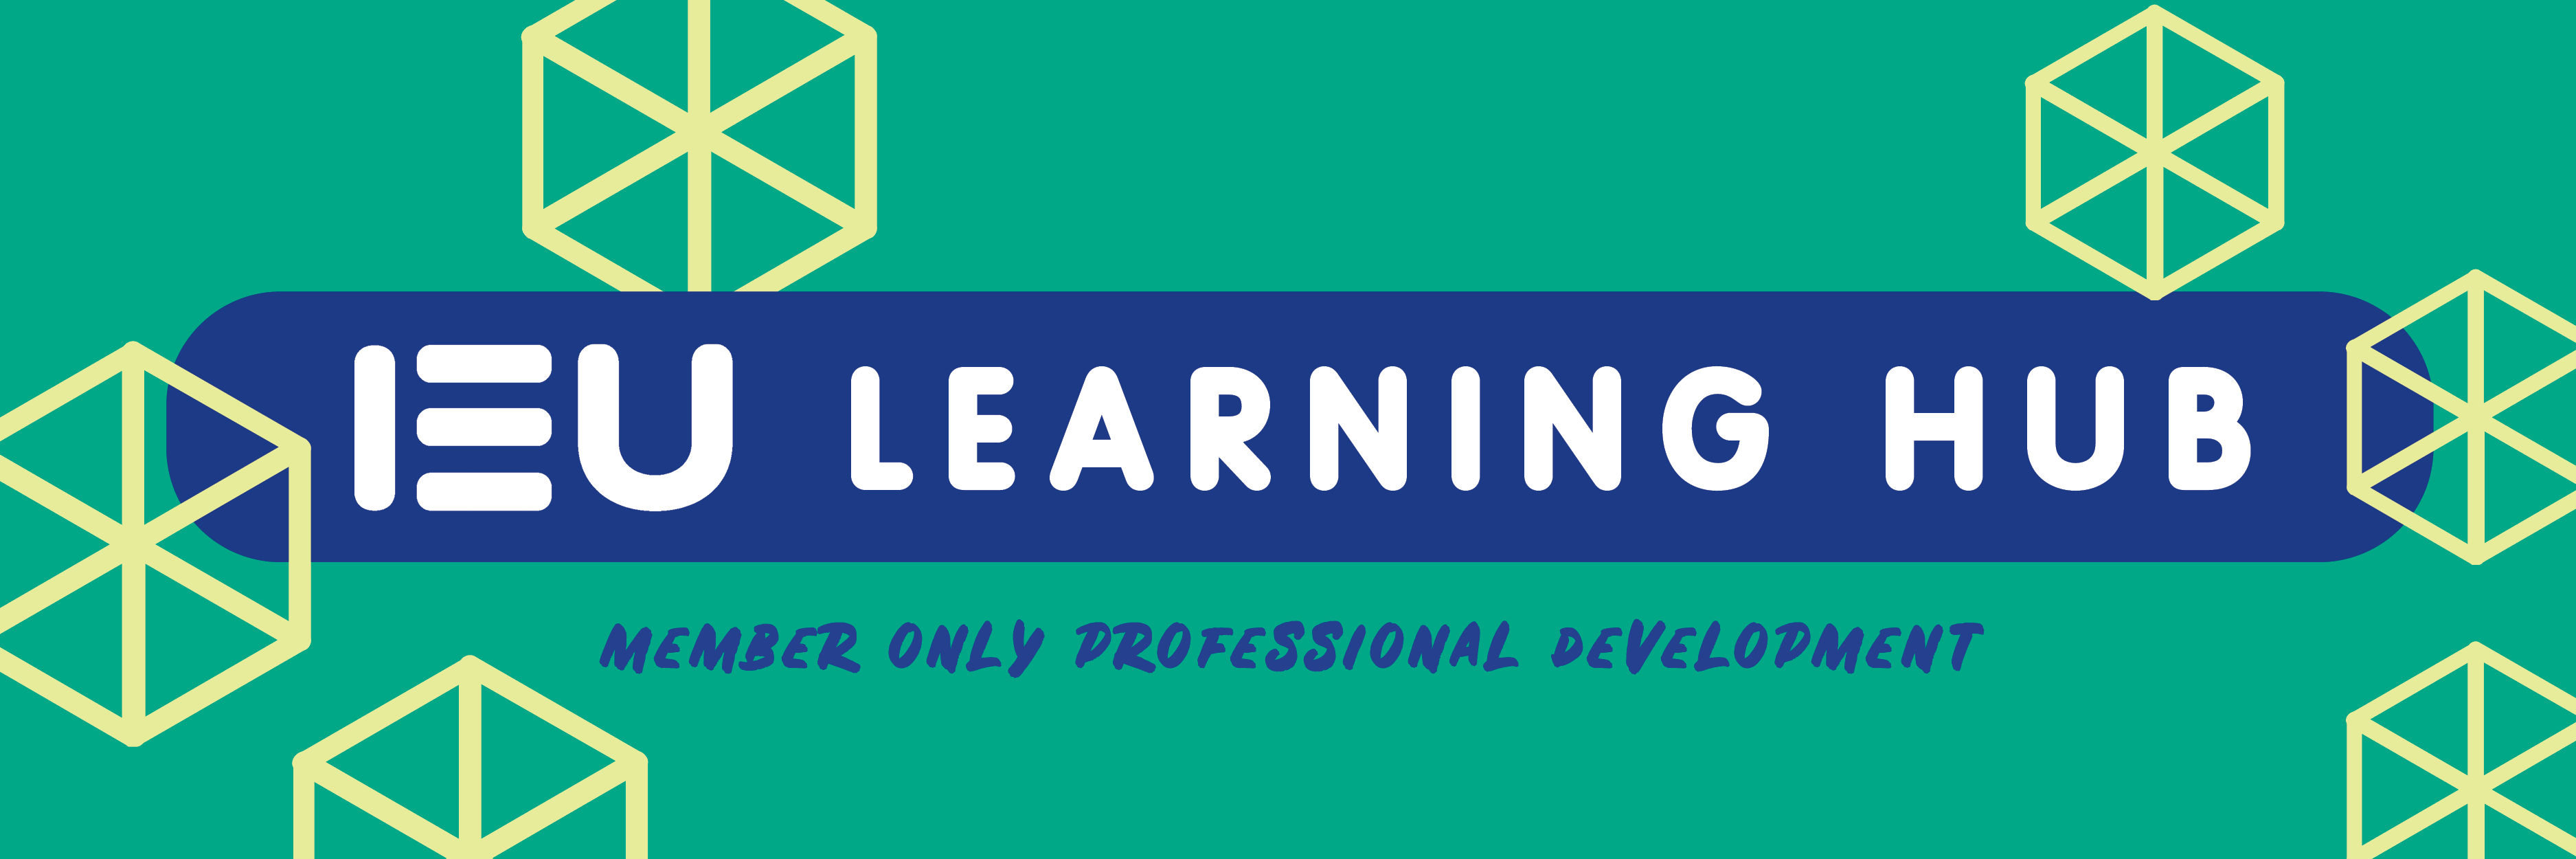 IEU Learning Hub Title Banner